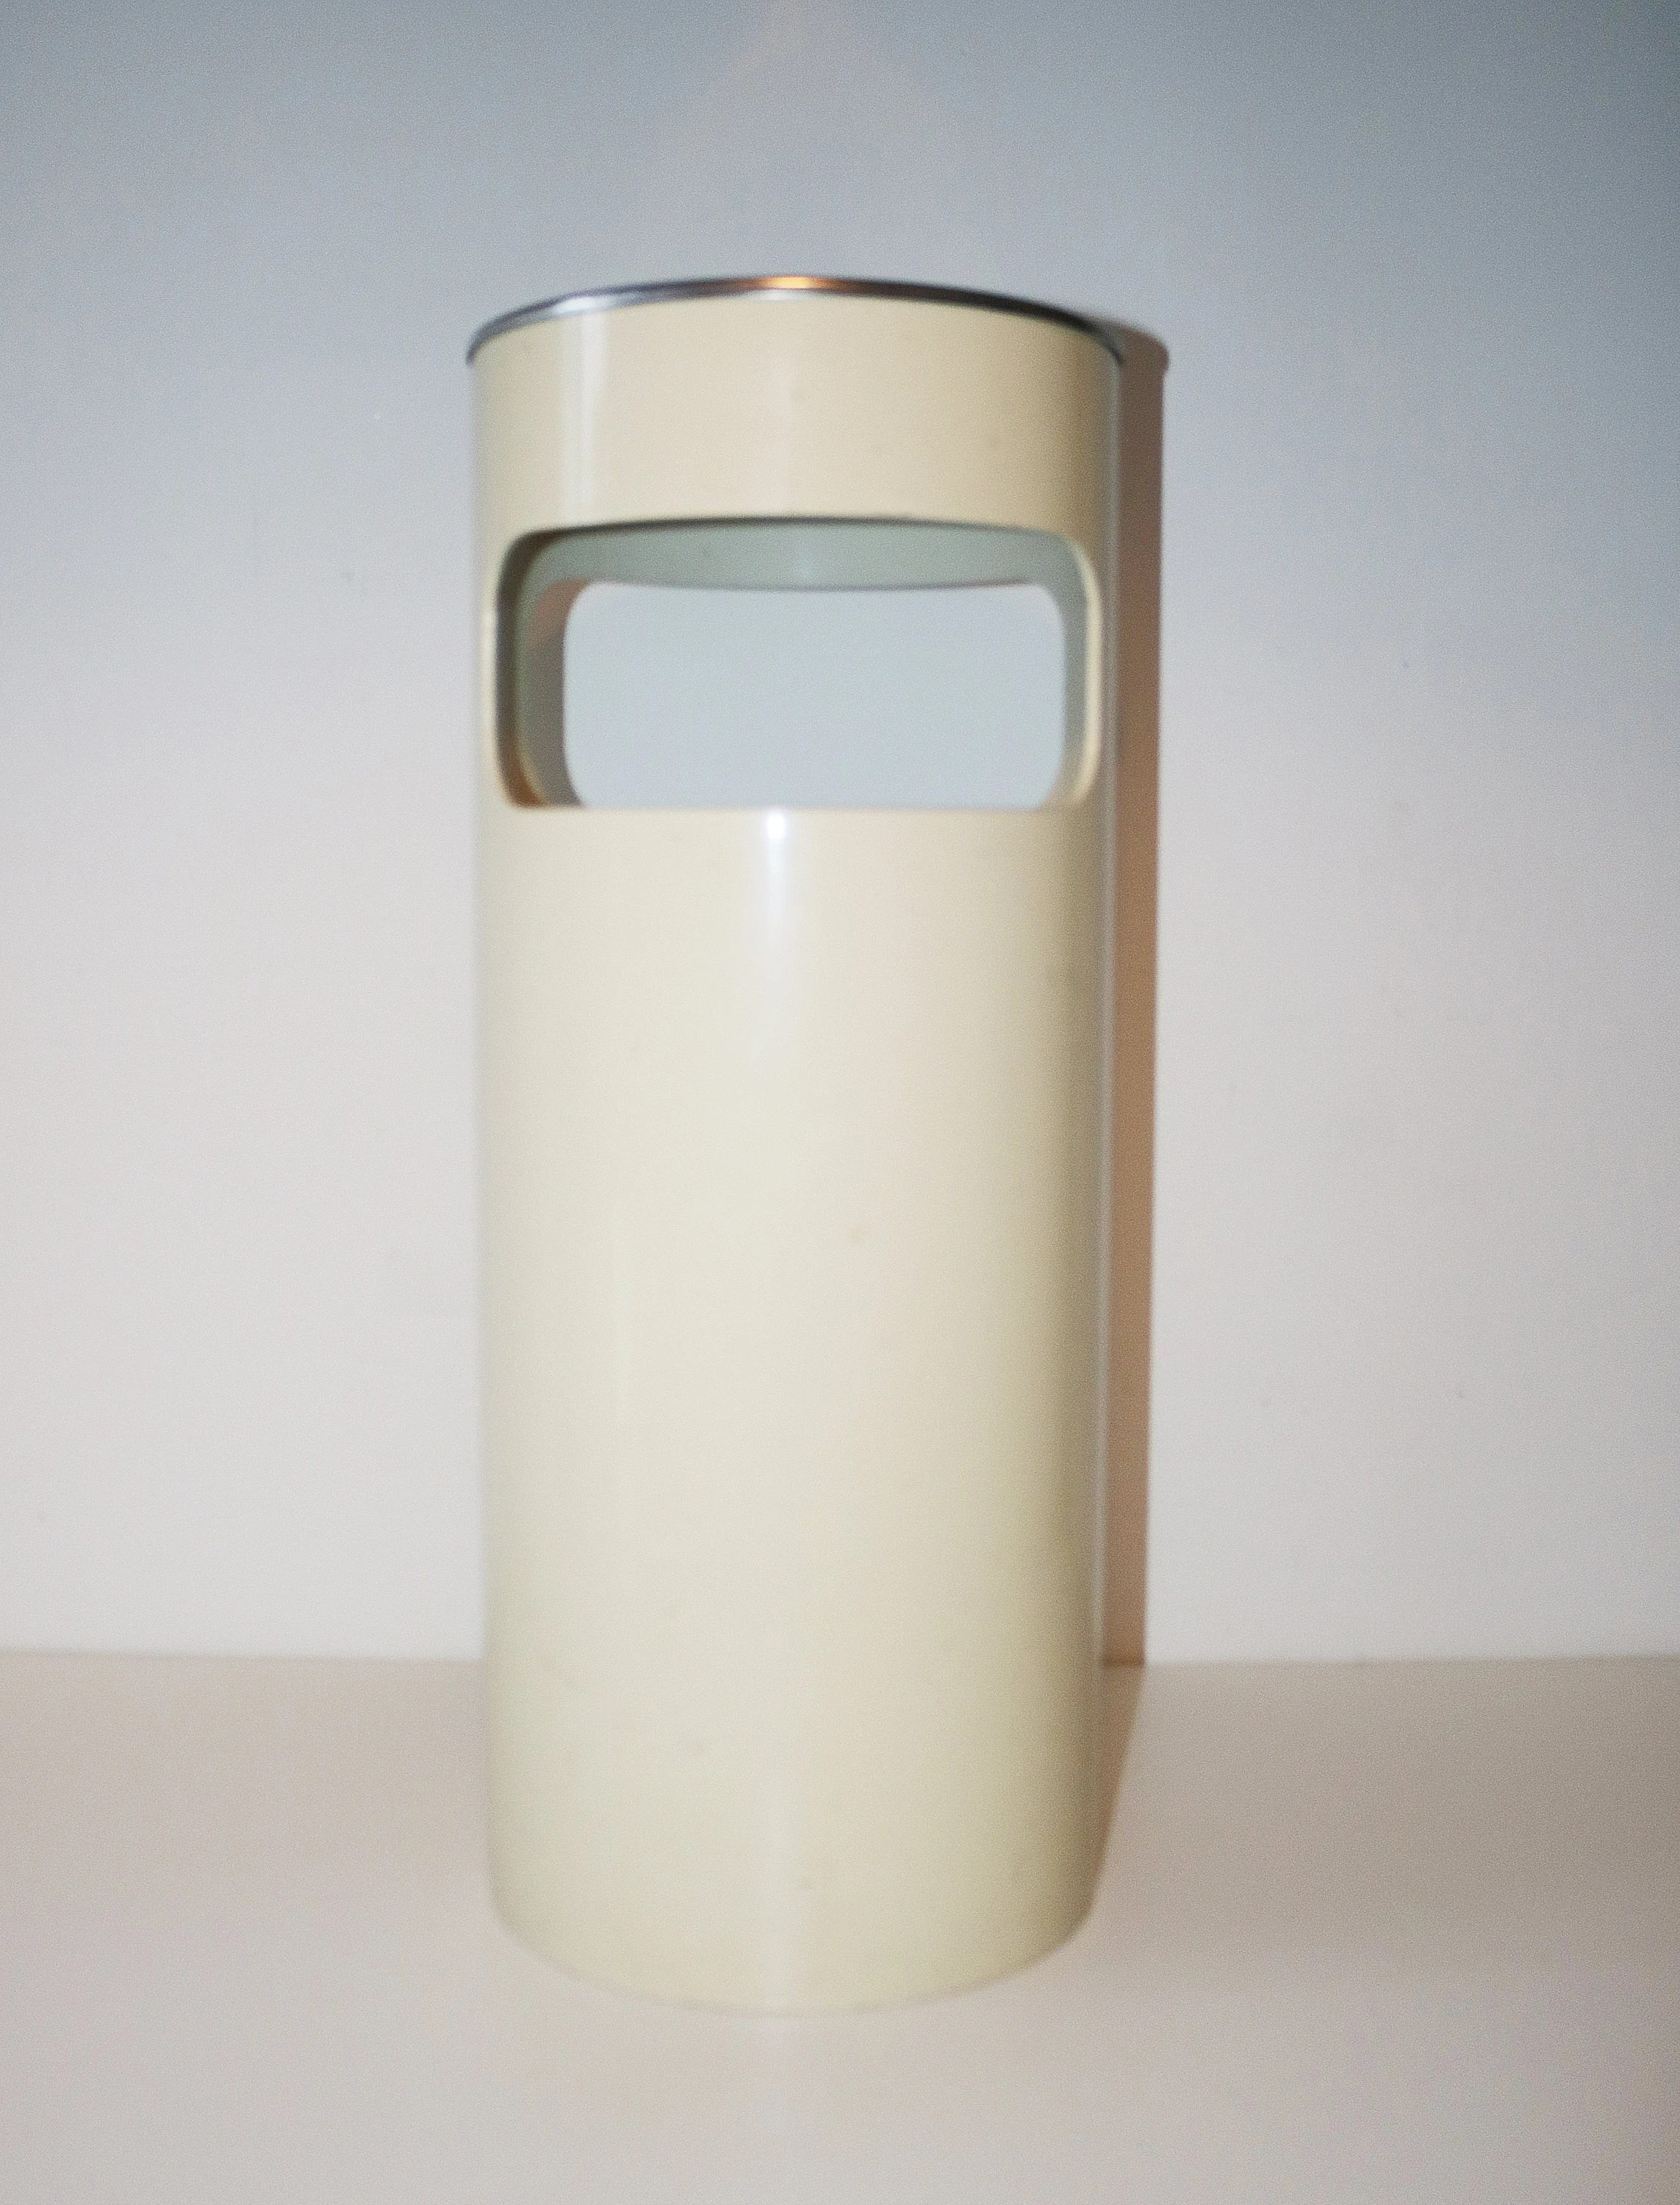 Kartell Container Kartell Umbrella Stand Waste Bin With Original Ashtray White Plastic Chrome And Black Enamel